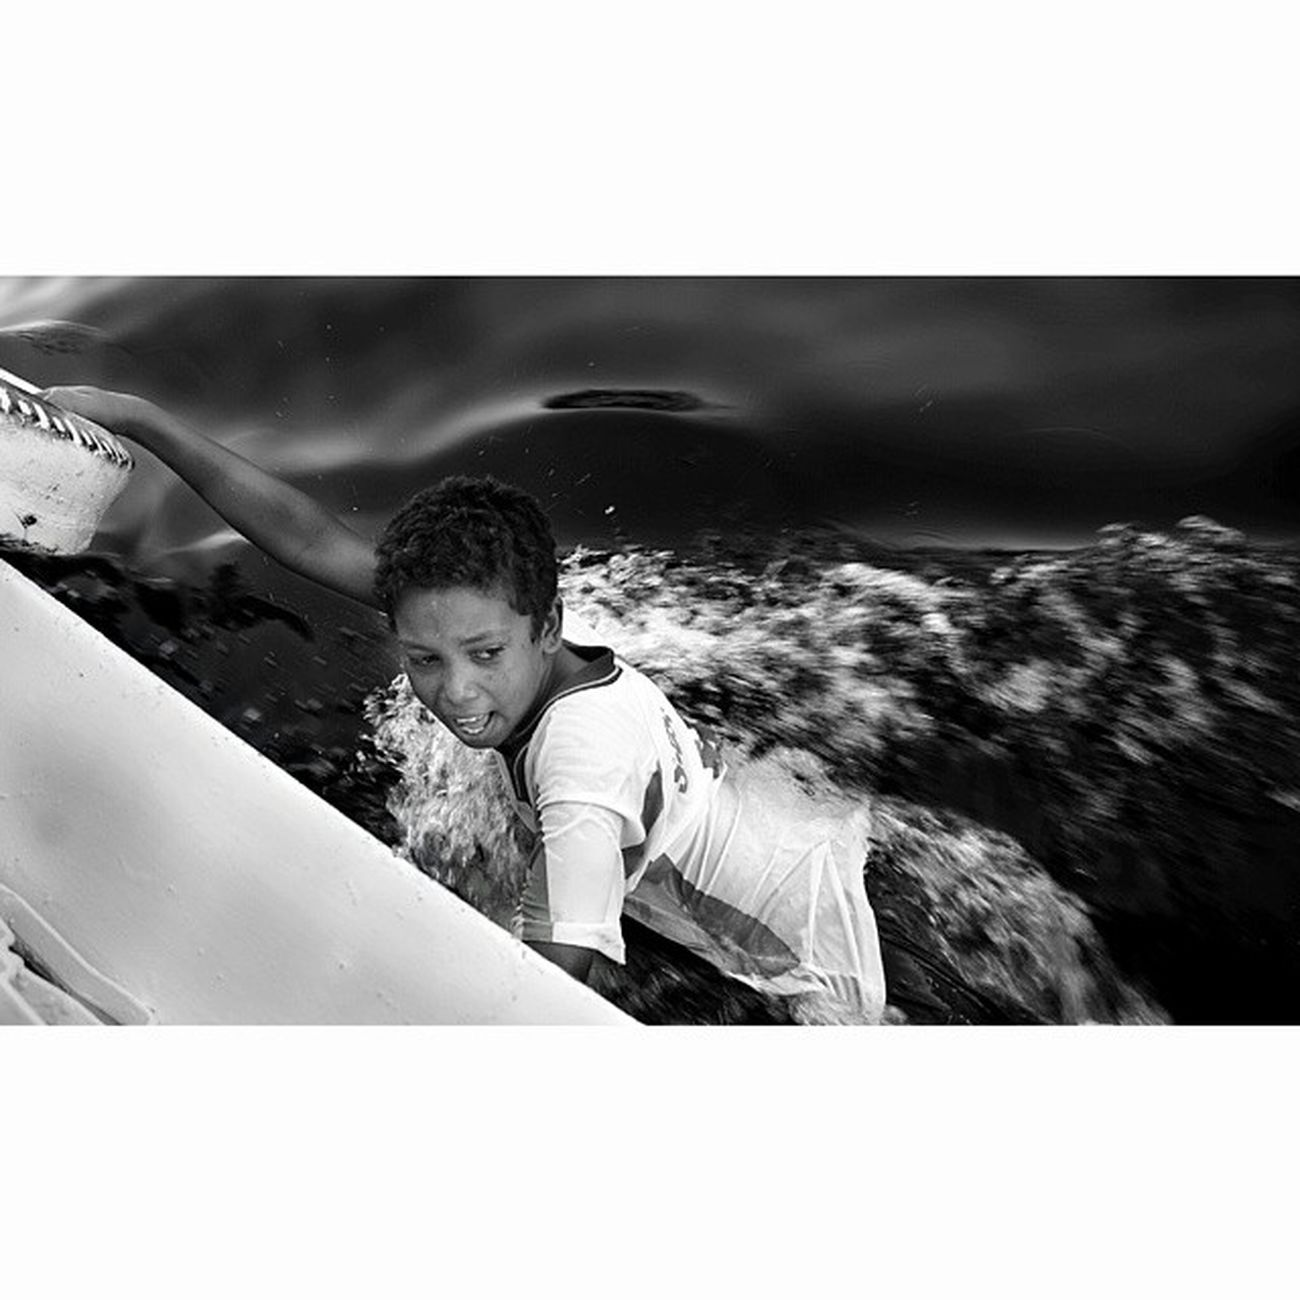 NileRiver Nilo Rionilo Children portrait travel viajes egypt egipto reportage reportaje river río people photographers beggar child on the Nile...